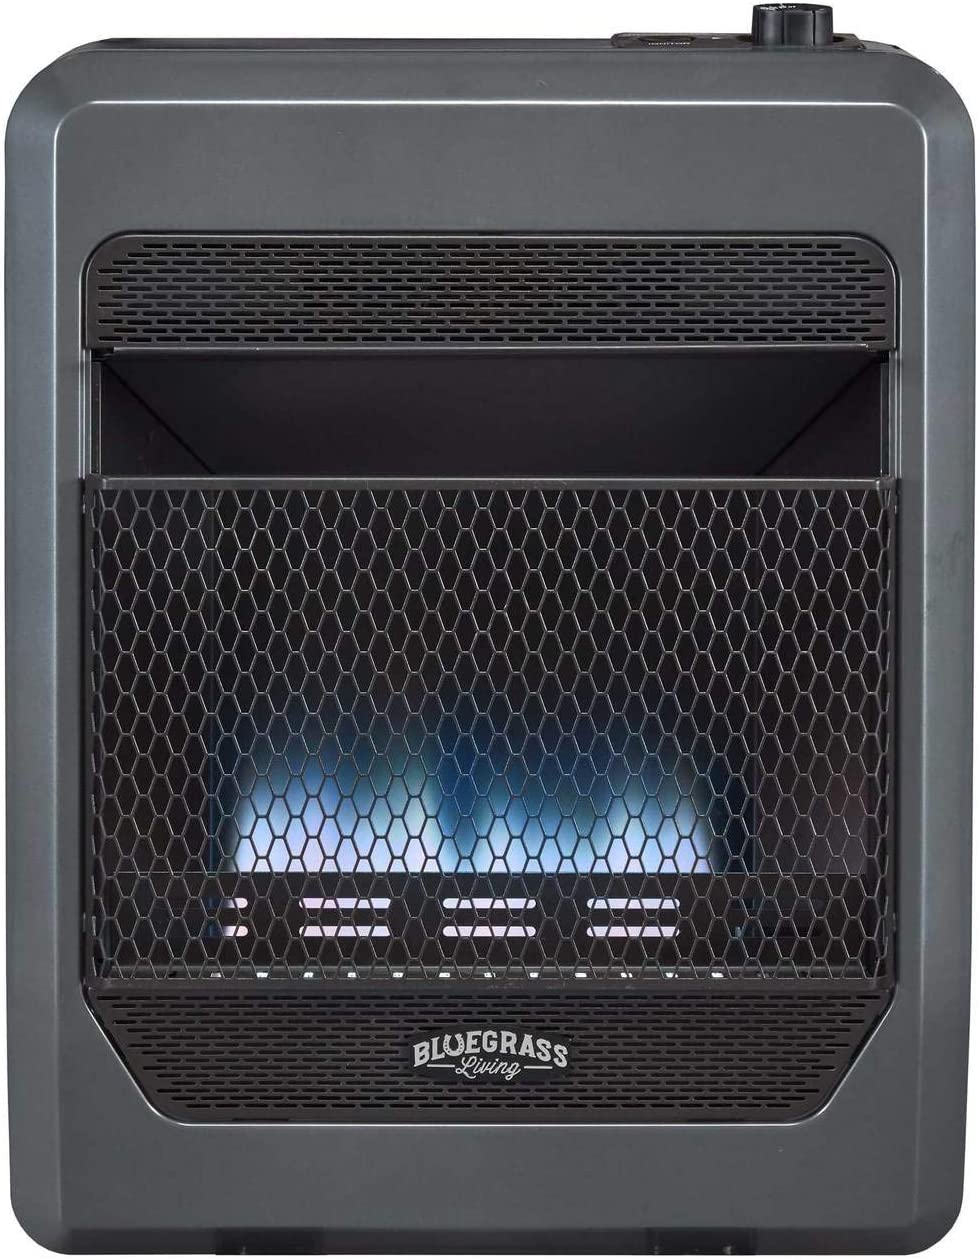 Bluegrass Living Bluegrass B20TPB-BB Vent Free Blue Flame Gas Space Heater with Blower and Base Feet-20,000, T-Stat Control, 20000 BTU, Black